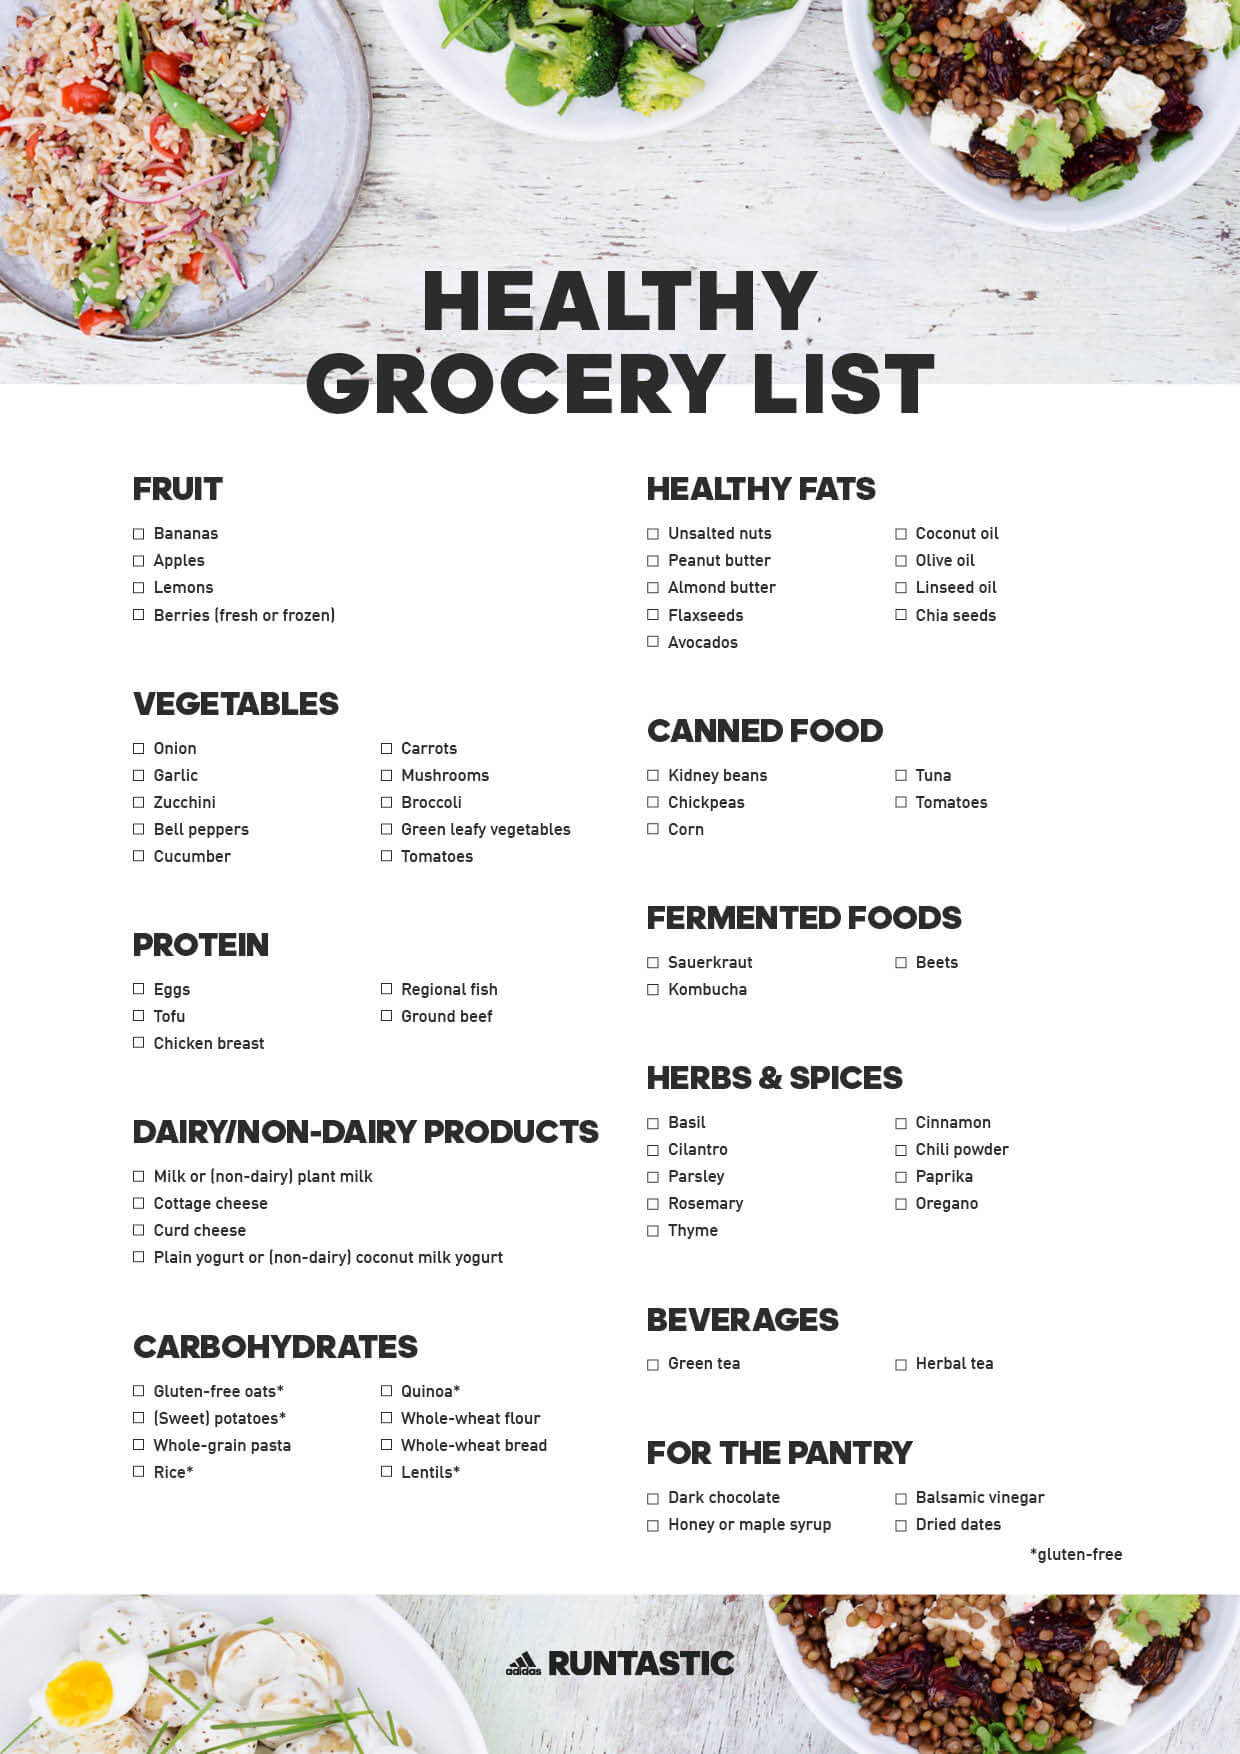 Healthy Shopping List: 13 Pantry Essentials ᐅ Download free PDF!